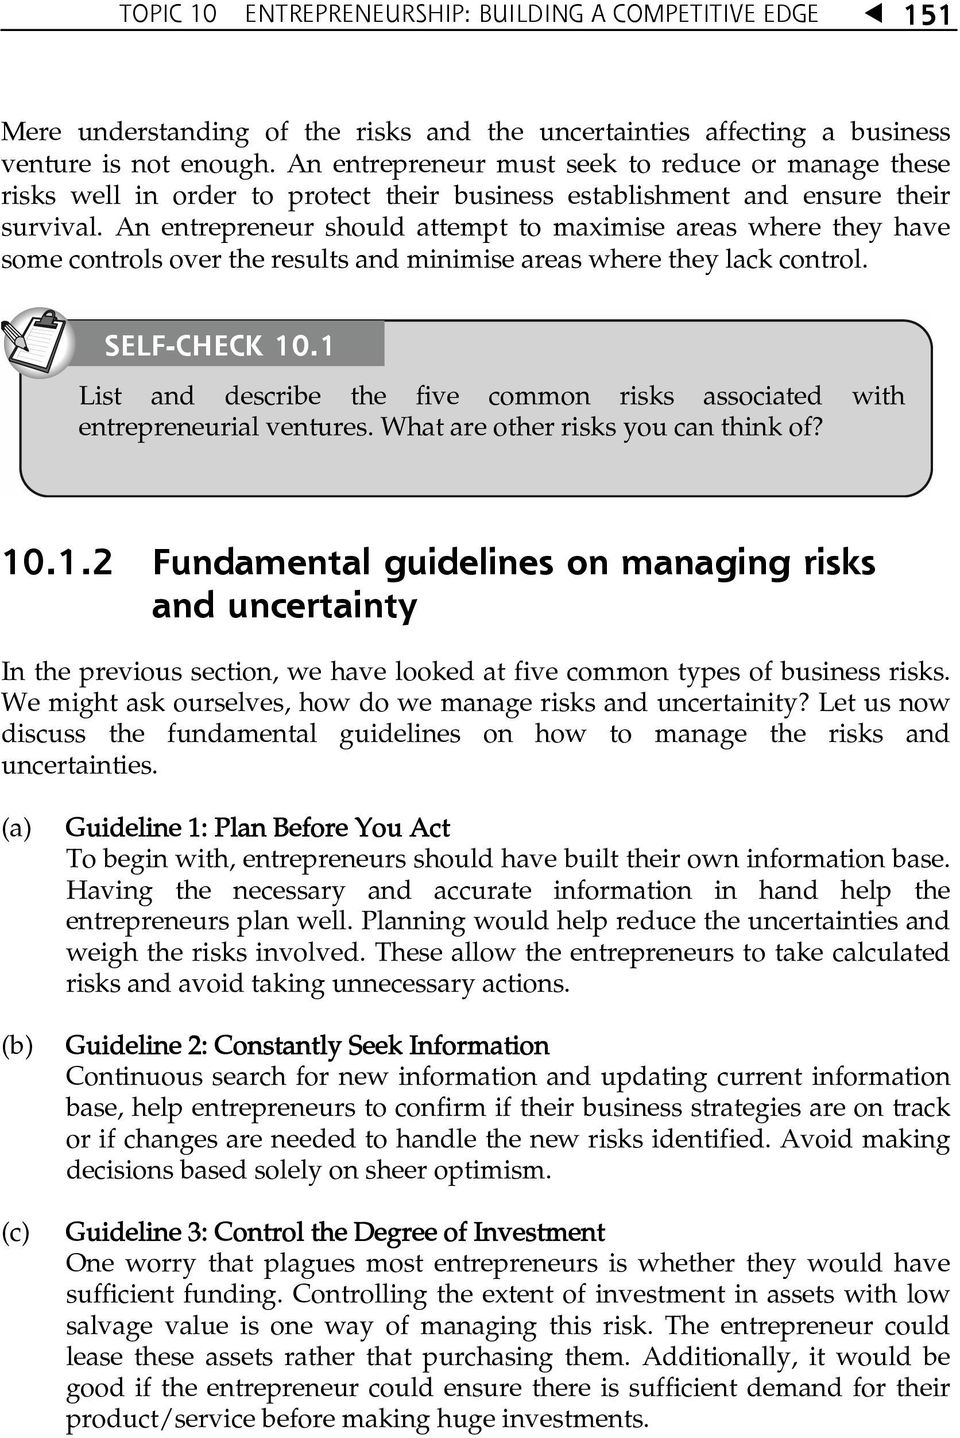 describe how to manage risks associated